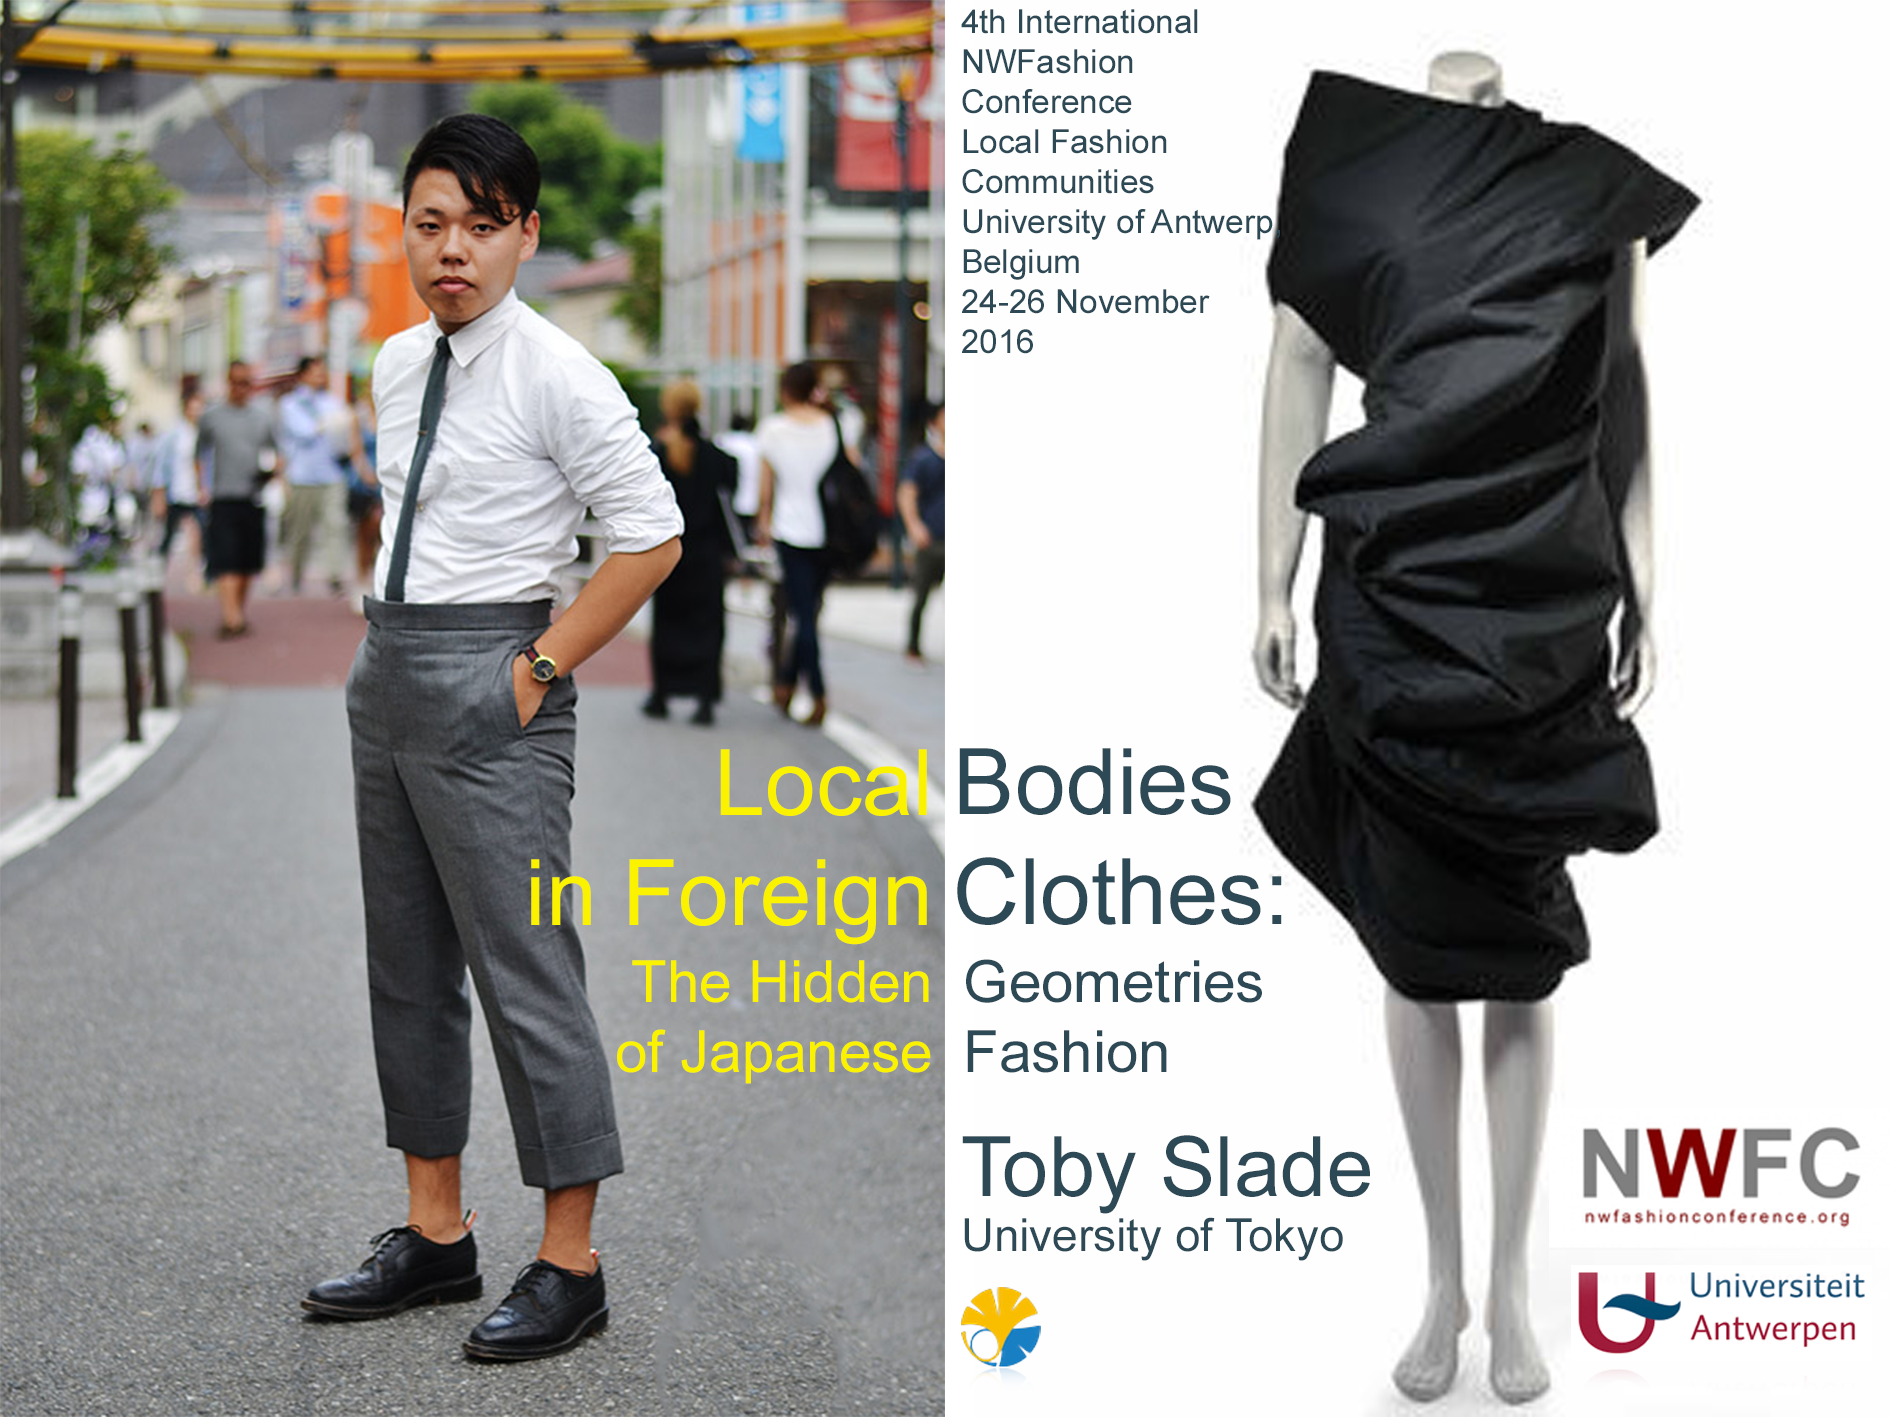 2016Non-Western Fashion Conference - University of Antwerp